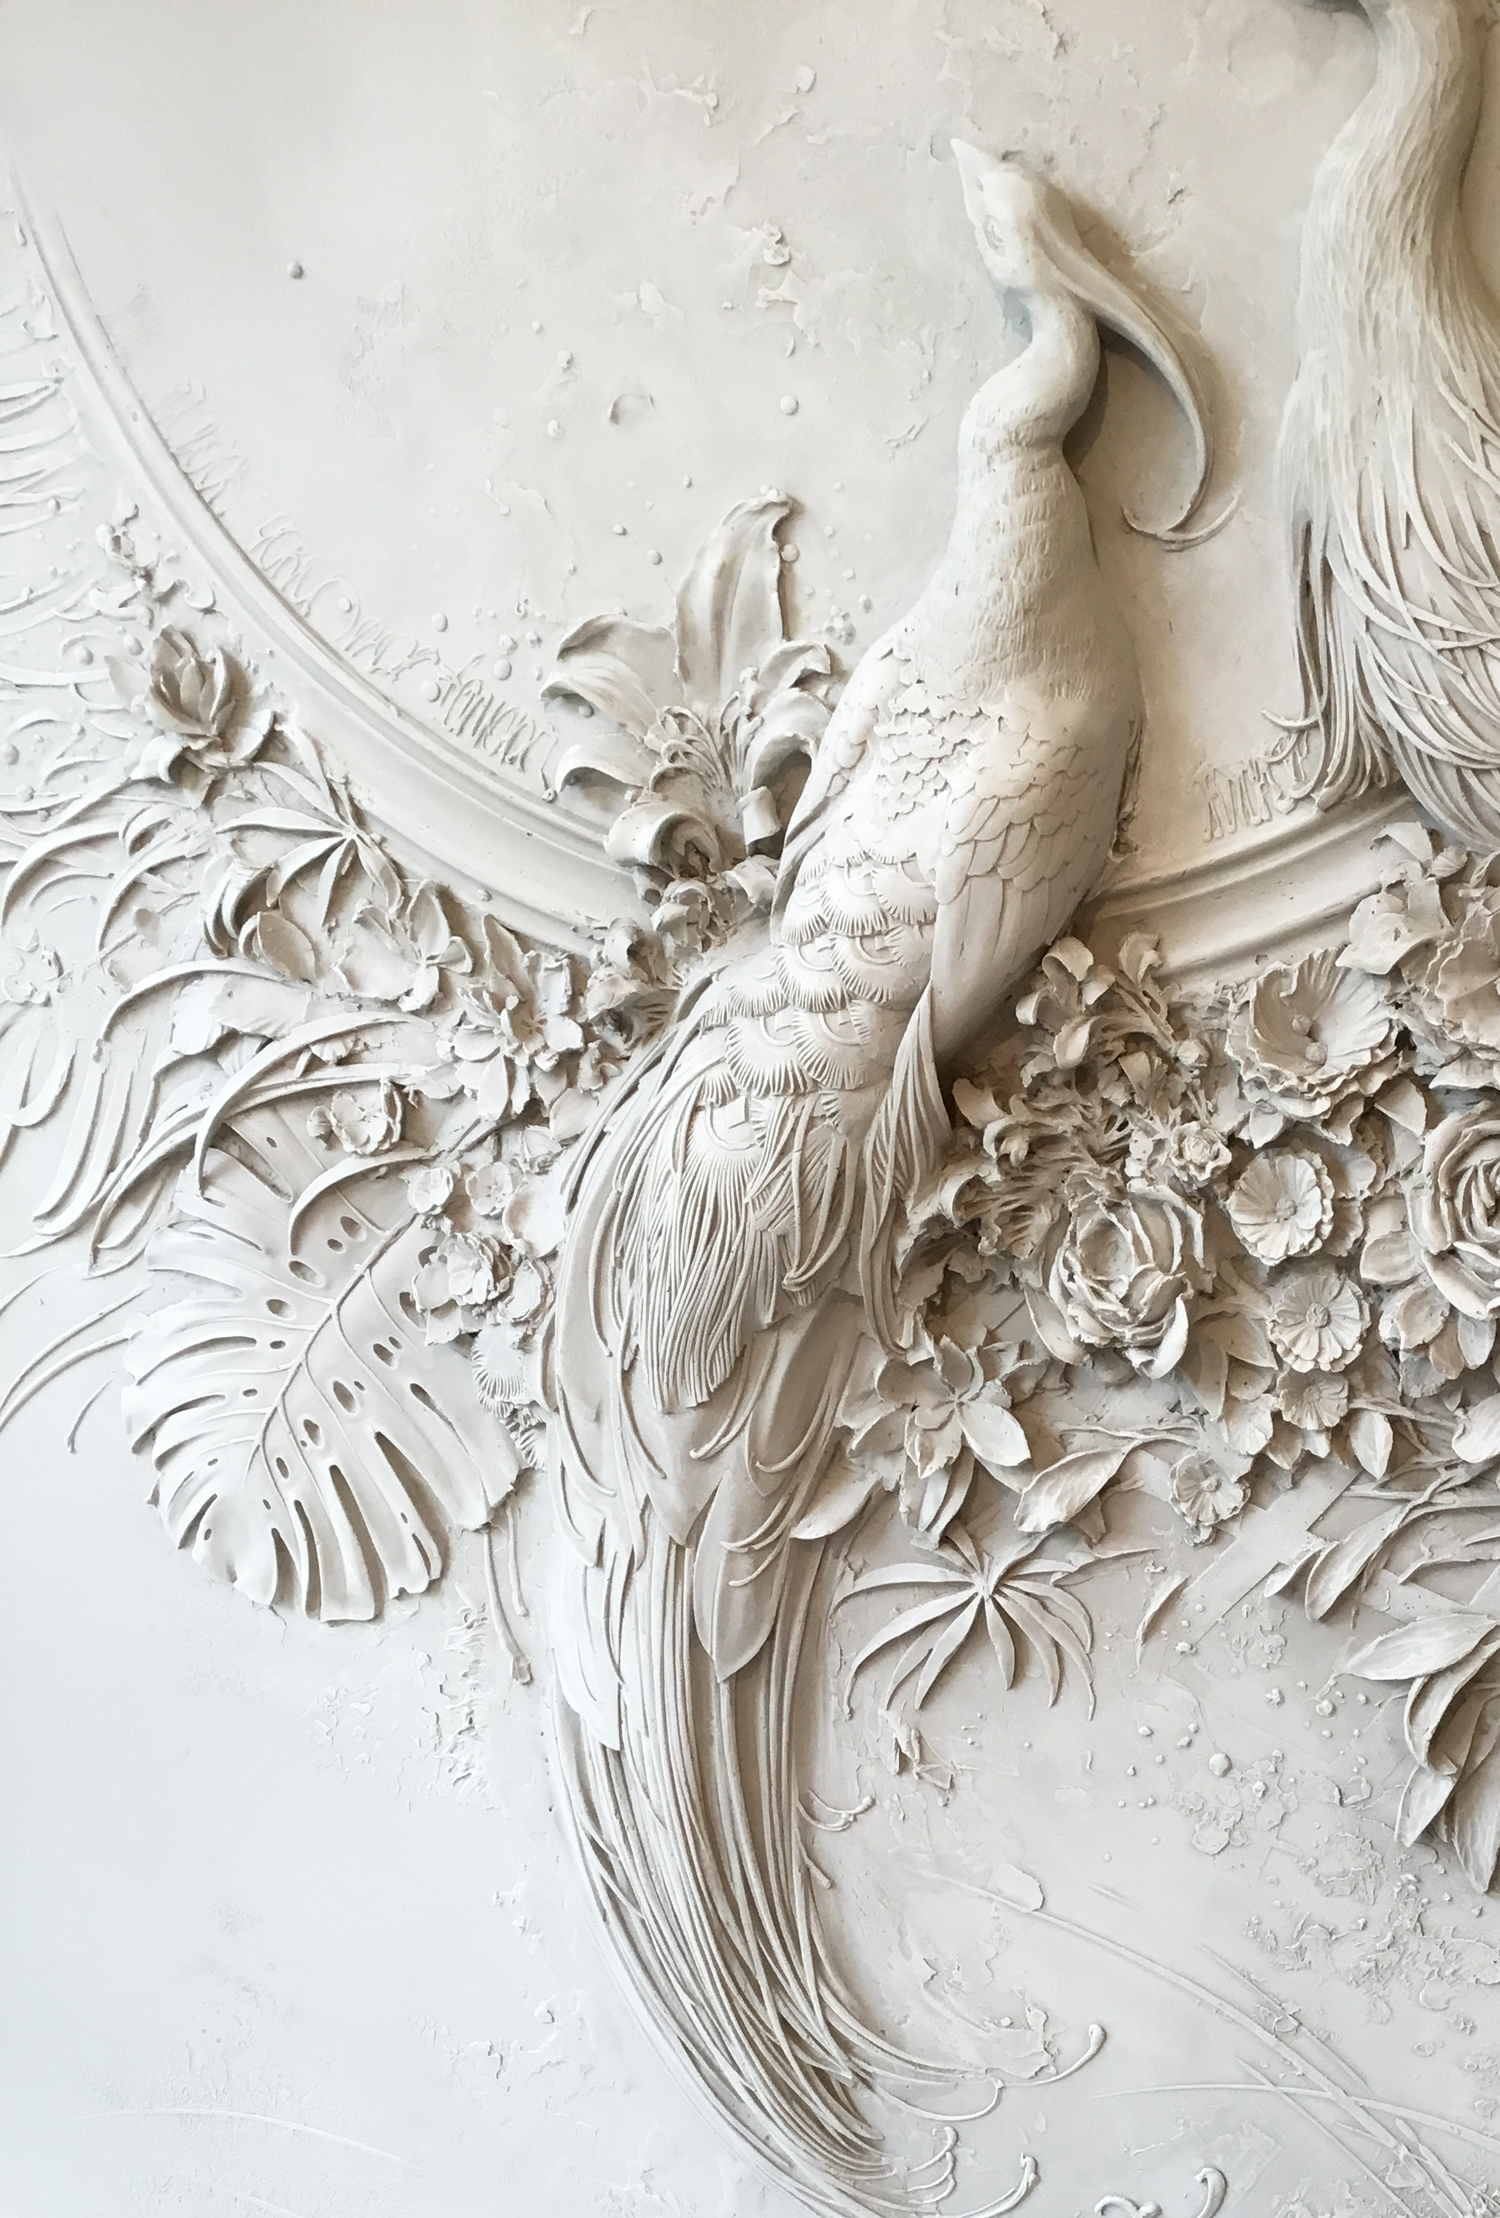 Interior bas relief sculptures of peacocks and lush florals by